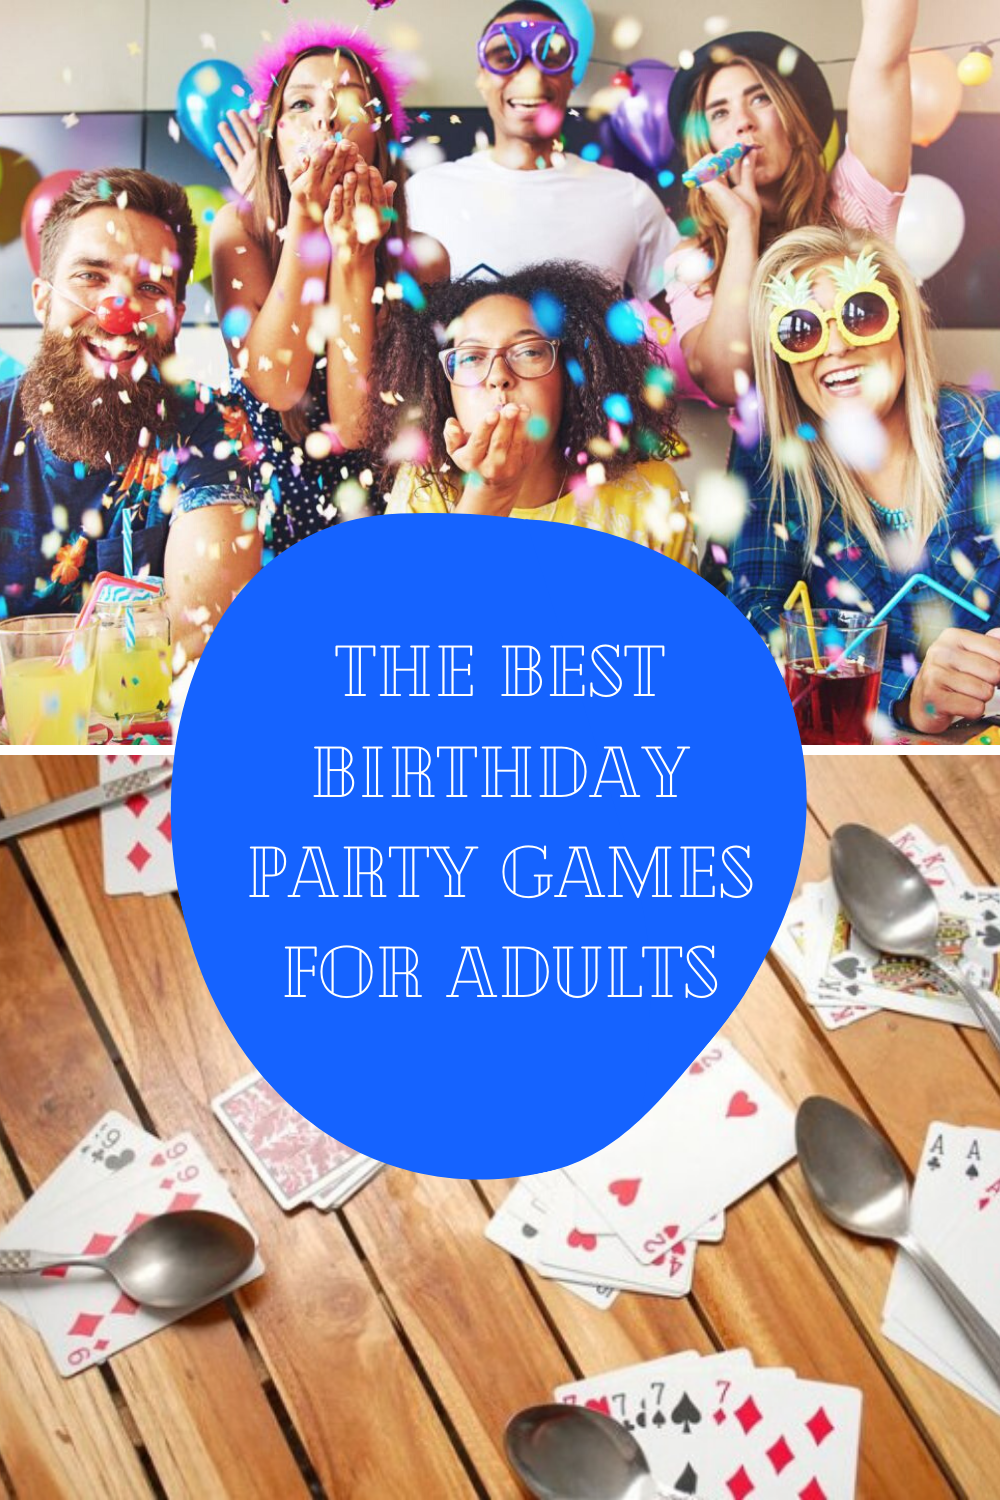 Birthday Party Games for Adults